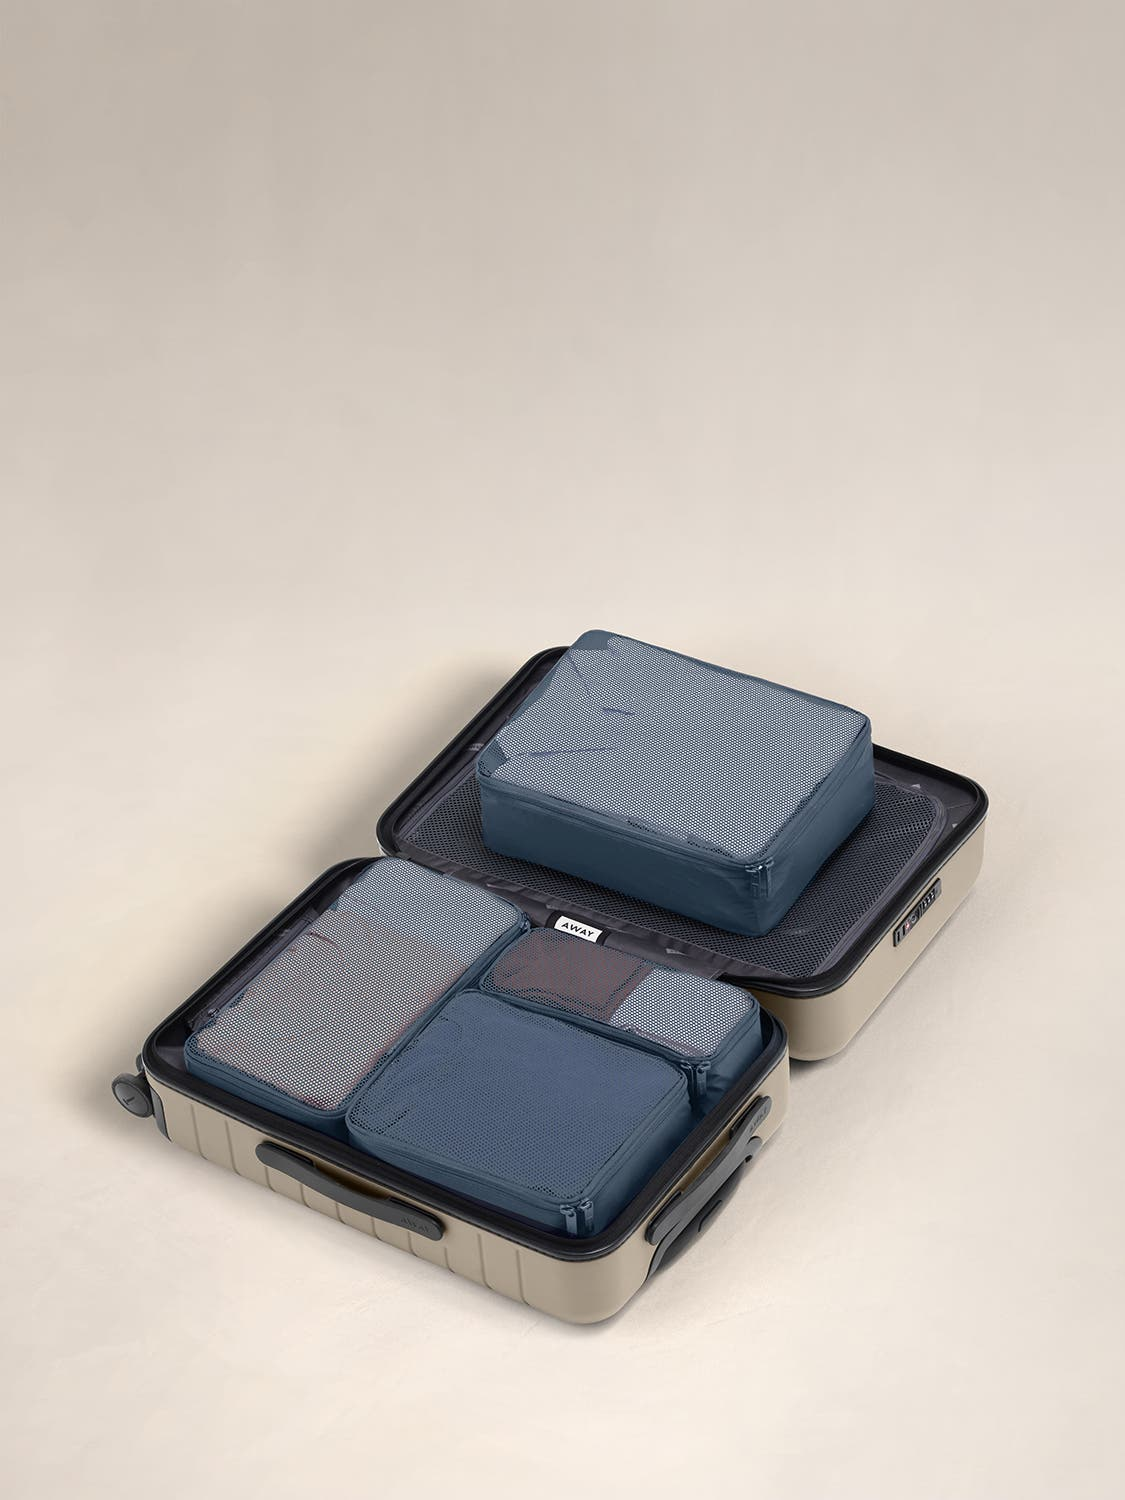 Coast travel packing cubes displayed in an Away suitcase